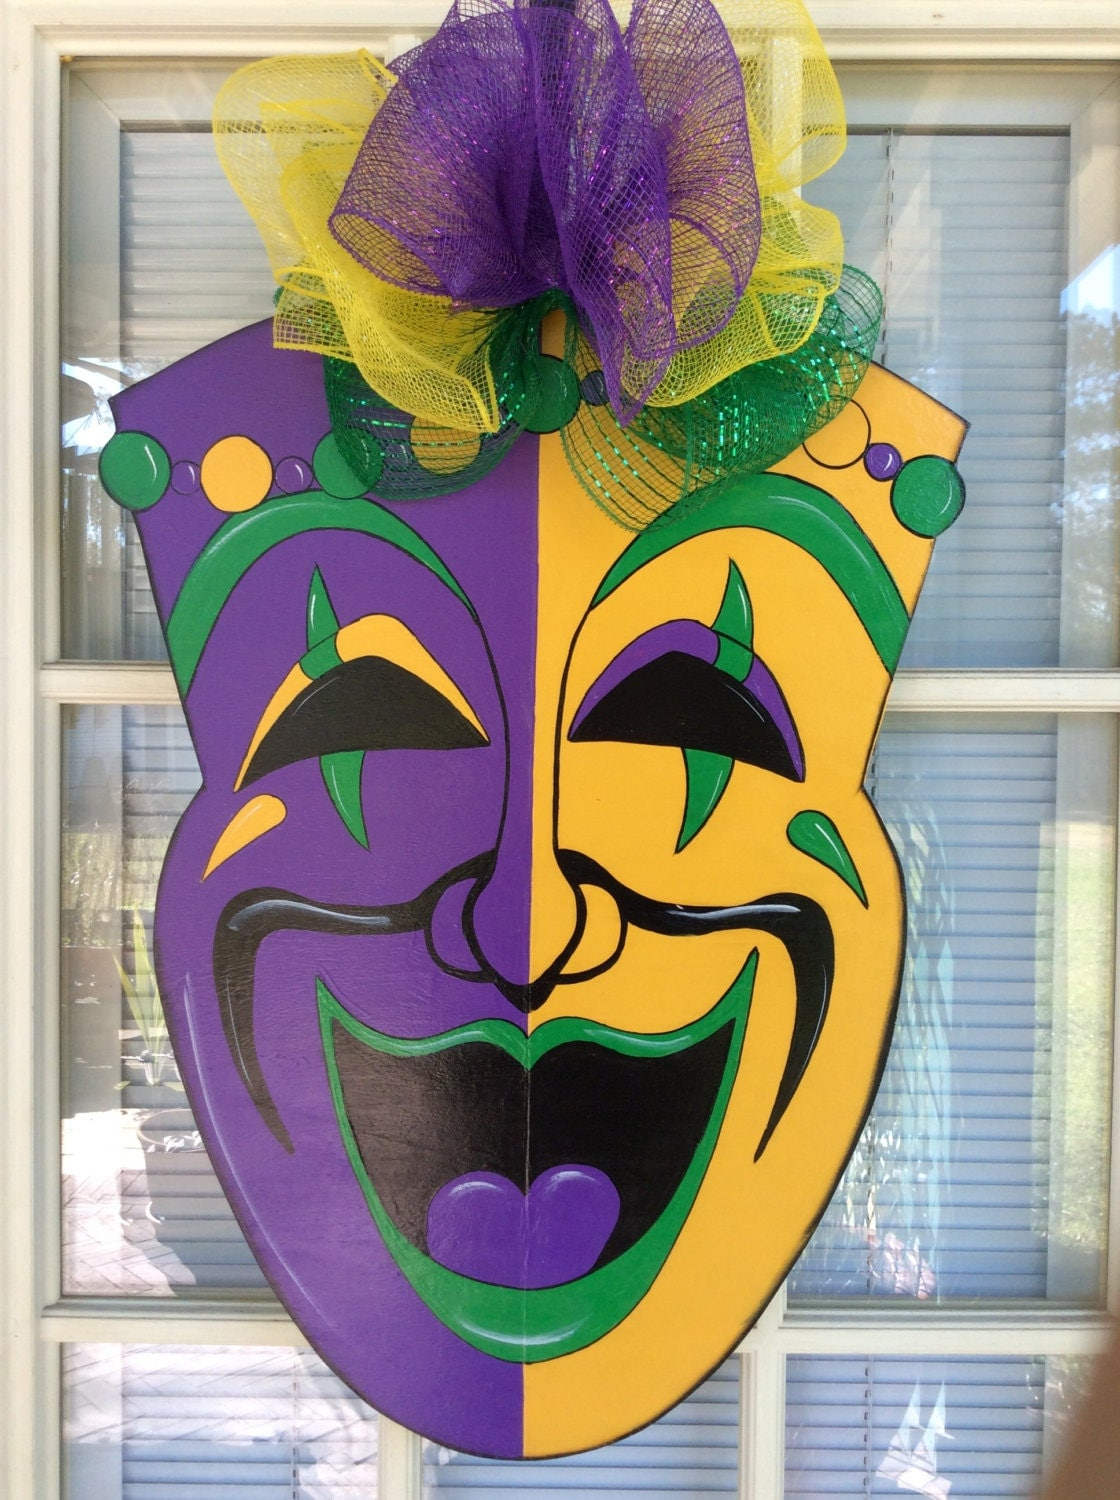 Exelent Mardi Gras Wall Decorations Image Collection - Wall Art ...